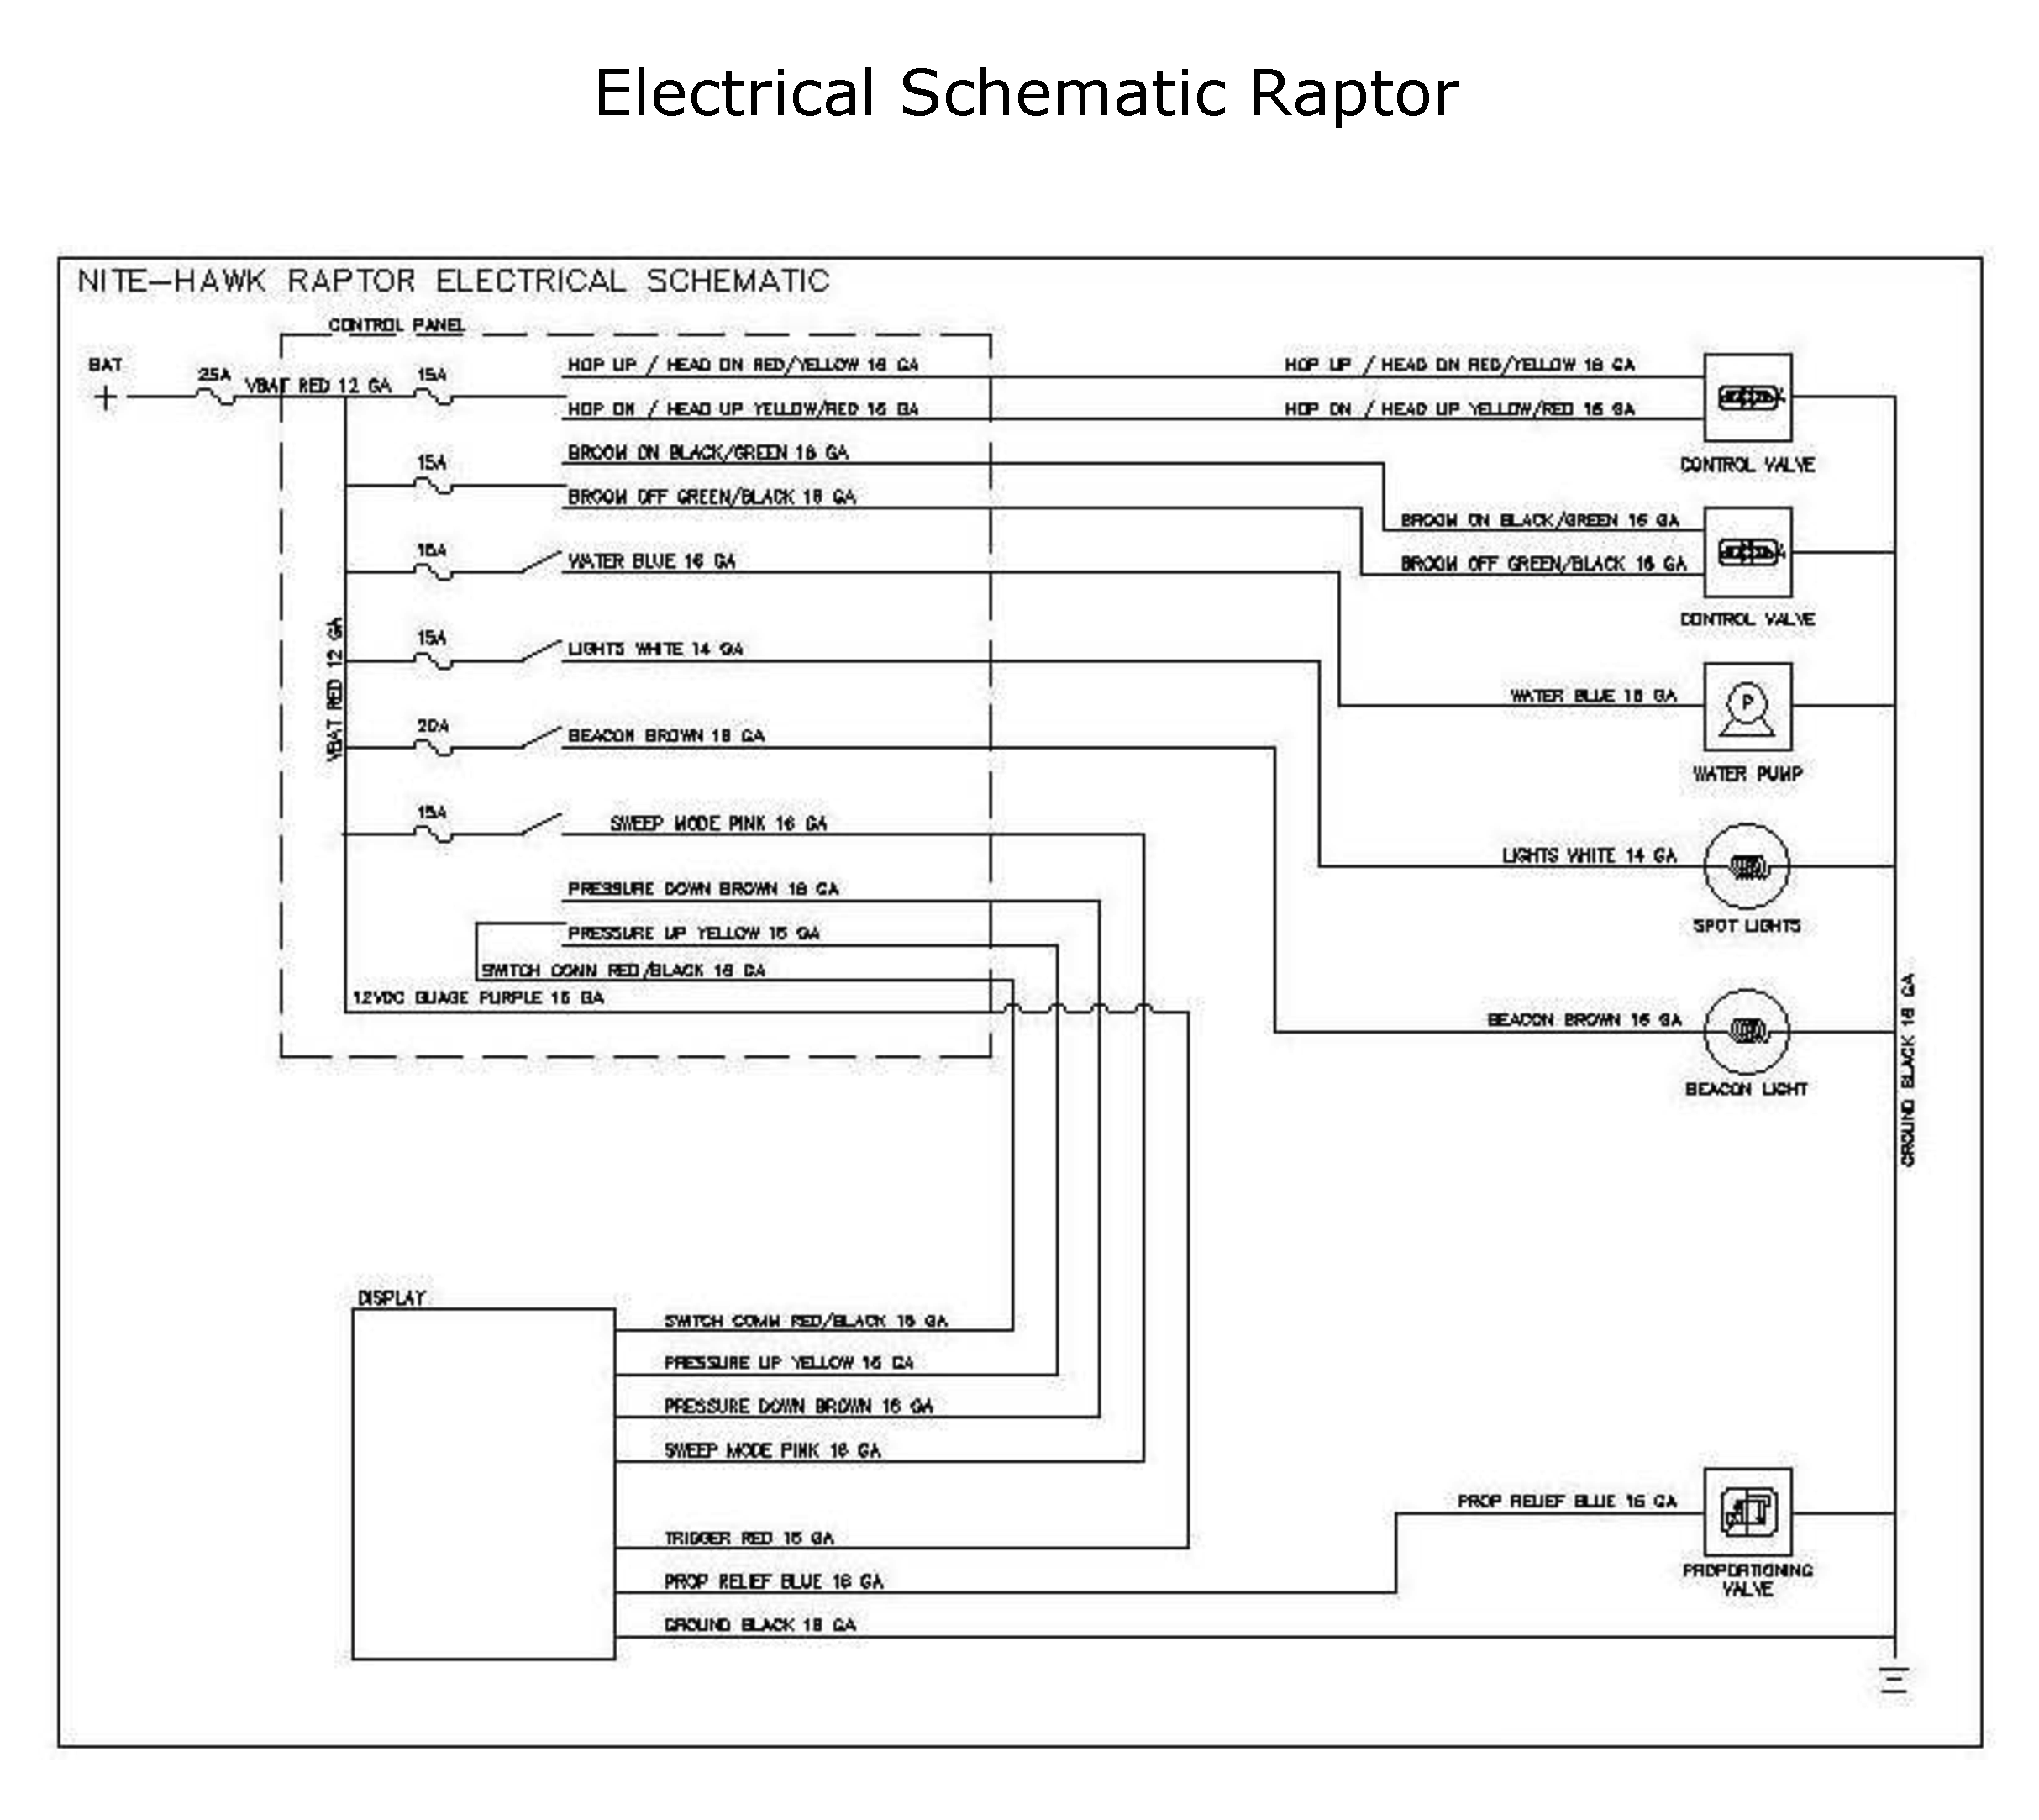 electrical-schematic-raptor.png